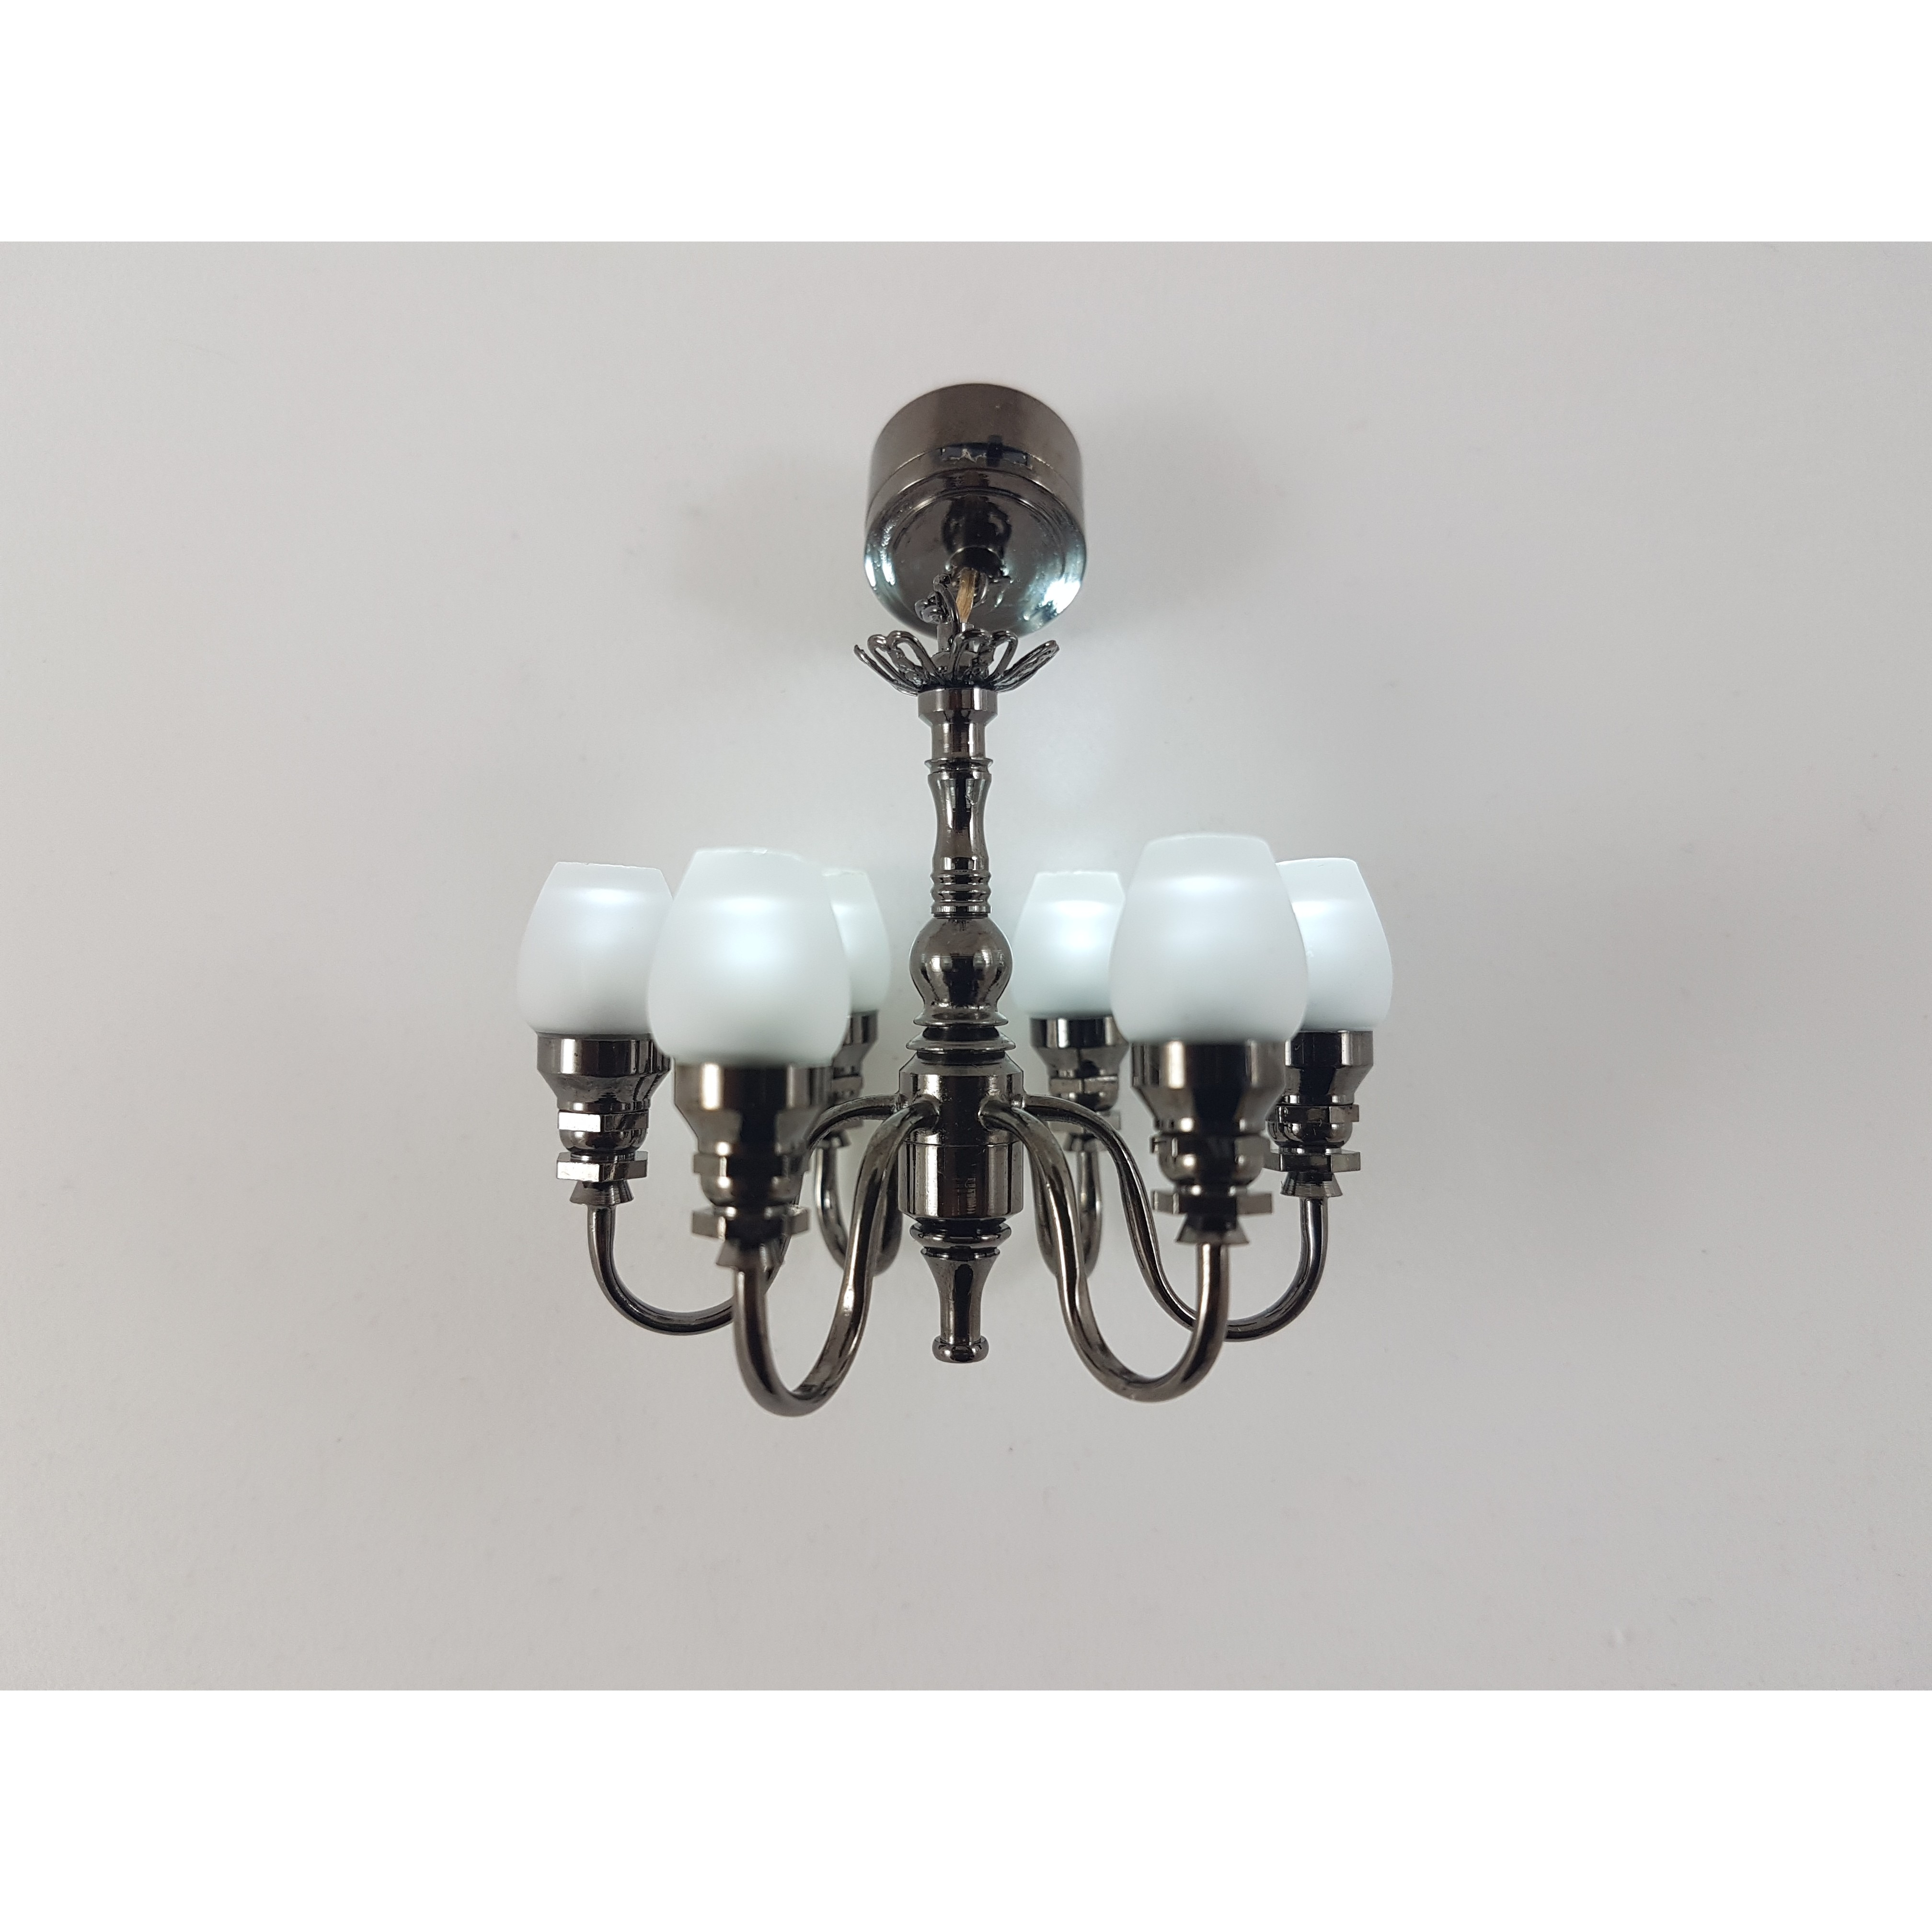 Carl schmeider bright led 6 light tulip chandelier aloadofball Image collections